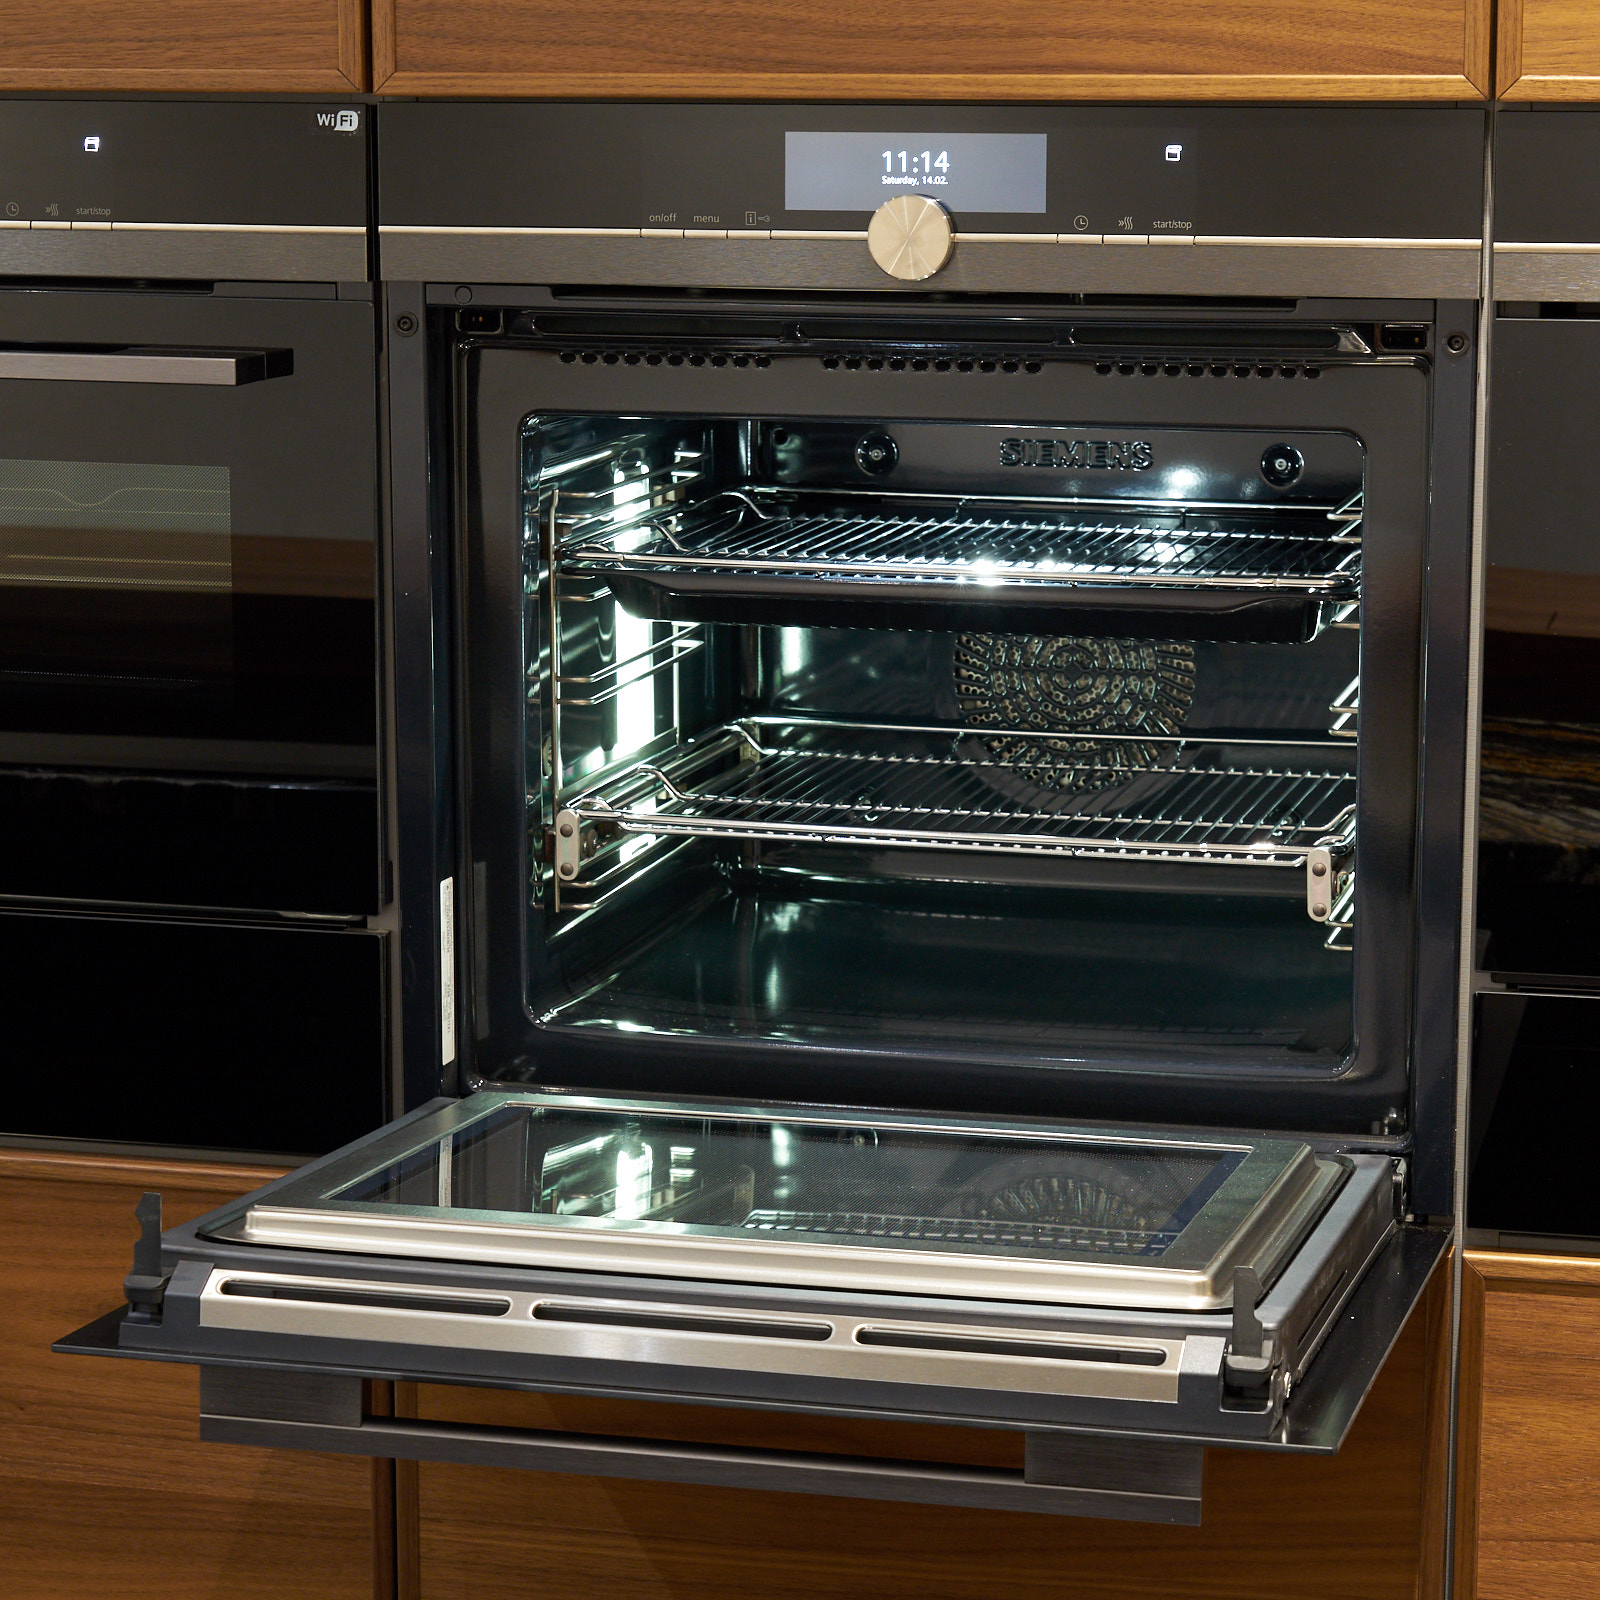 Ex Display Kitchen Cabinets: 60% OFF RRP £50,000+ RATIONAL (German) Ex Display Kitchen